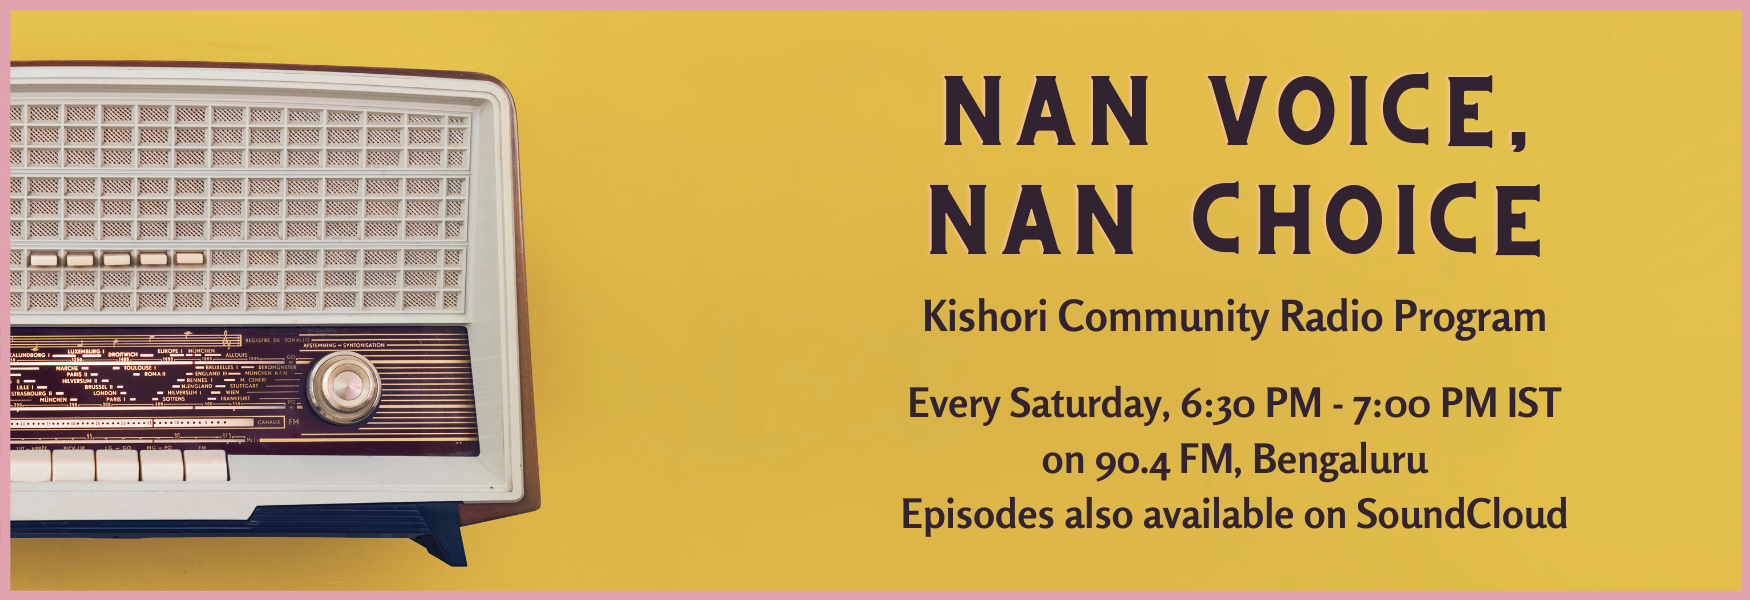 A picture of a radio set with a yellow background and pink border, on top of which is brown text. The text reads: Nan Voice, Nan Choice. Kishori Community Radio Program. Every Saturday, 7:00 PM IST on 90.4 FM. Bengaluru, Episodes also available on SoundCloud.